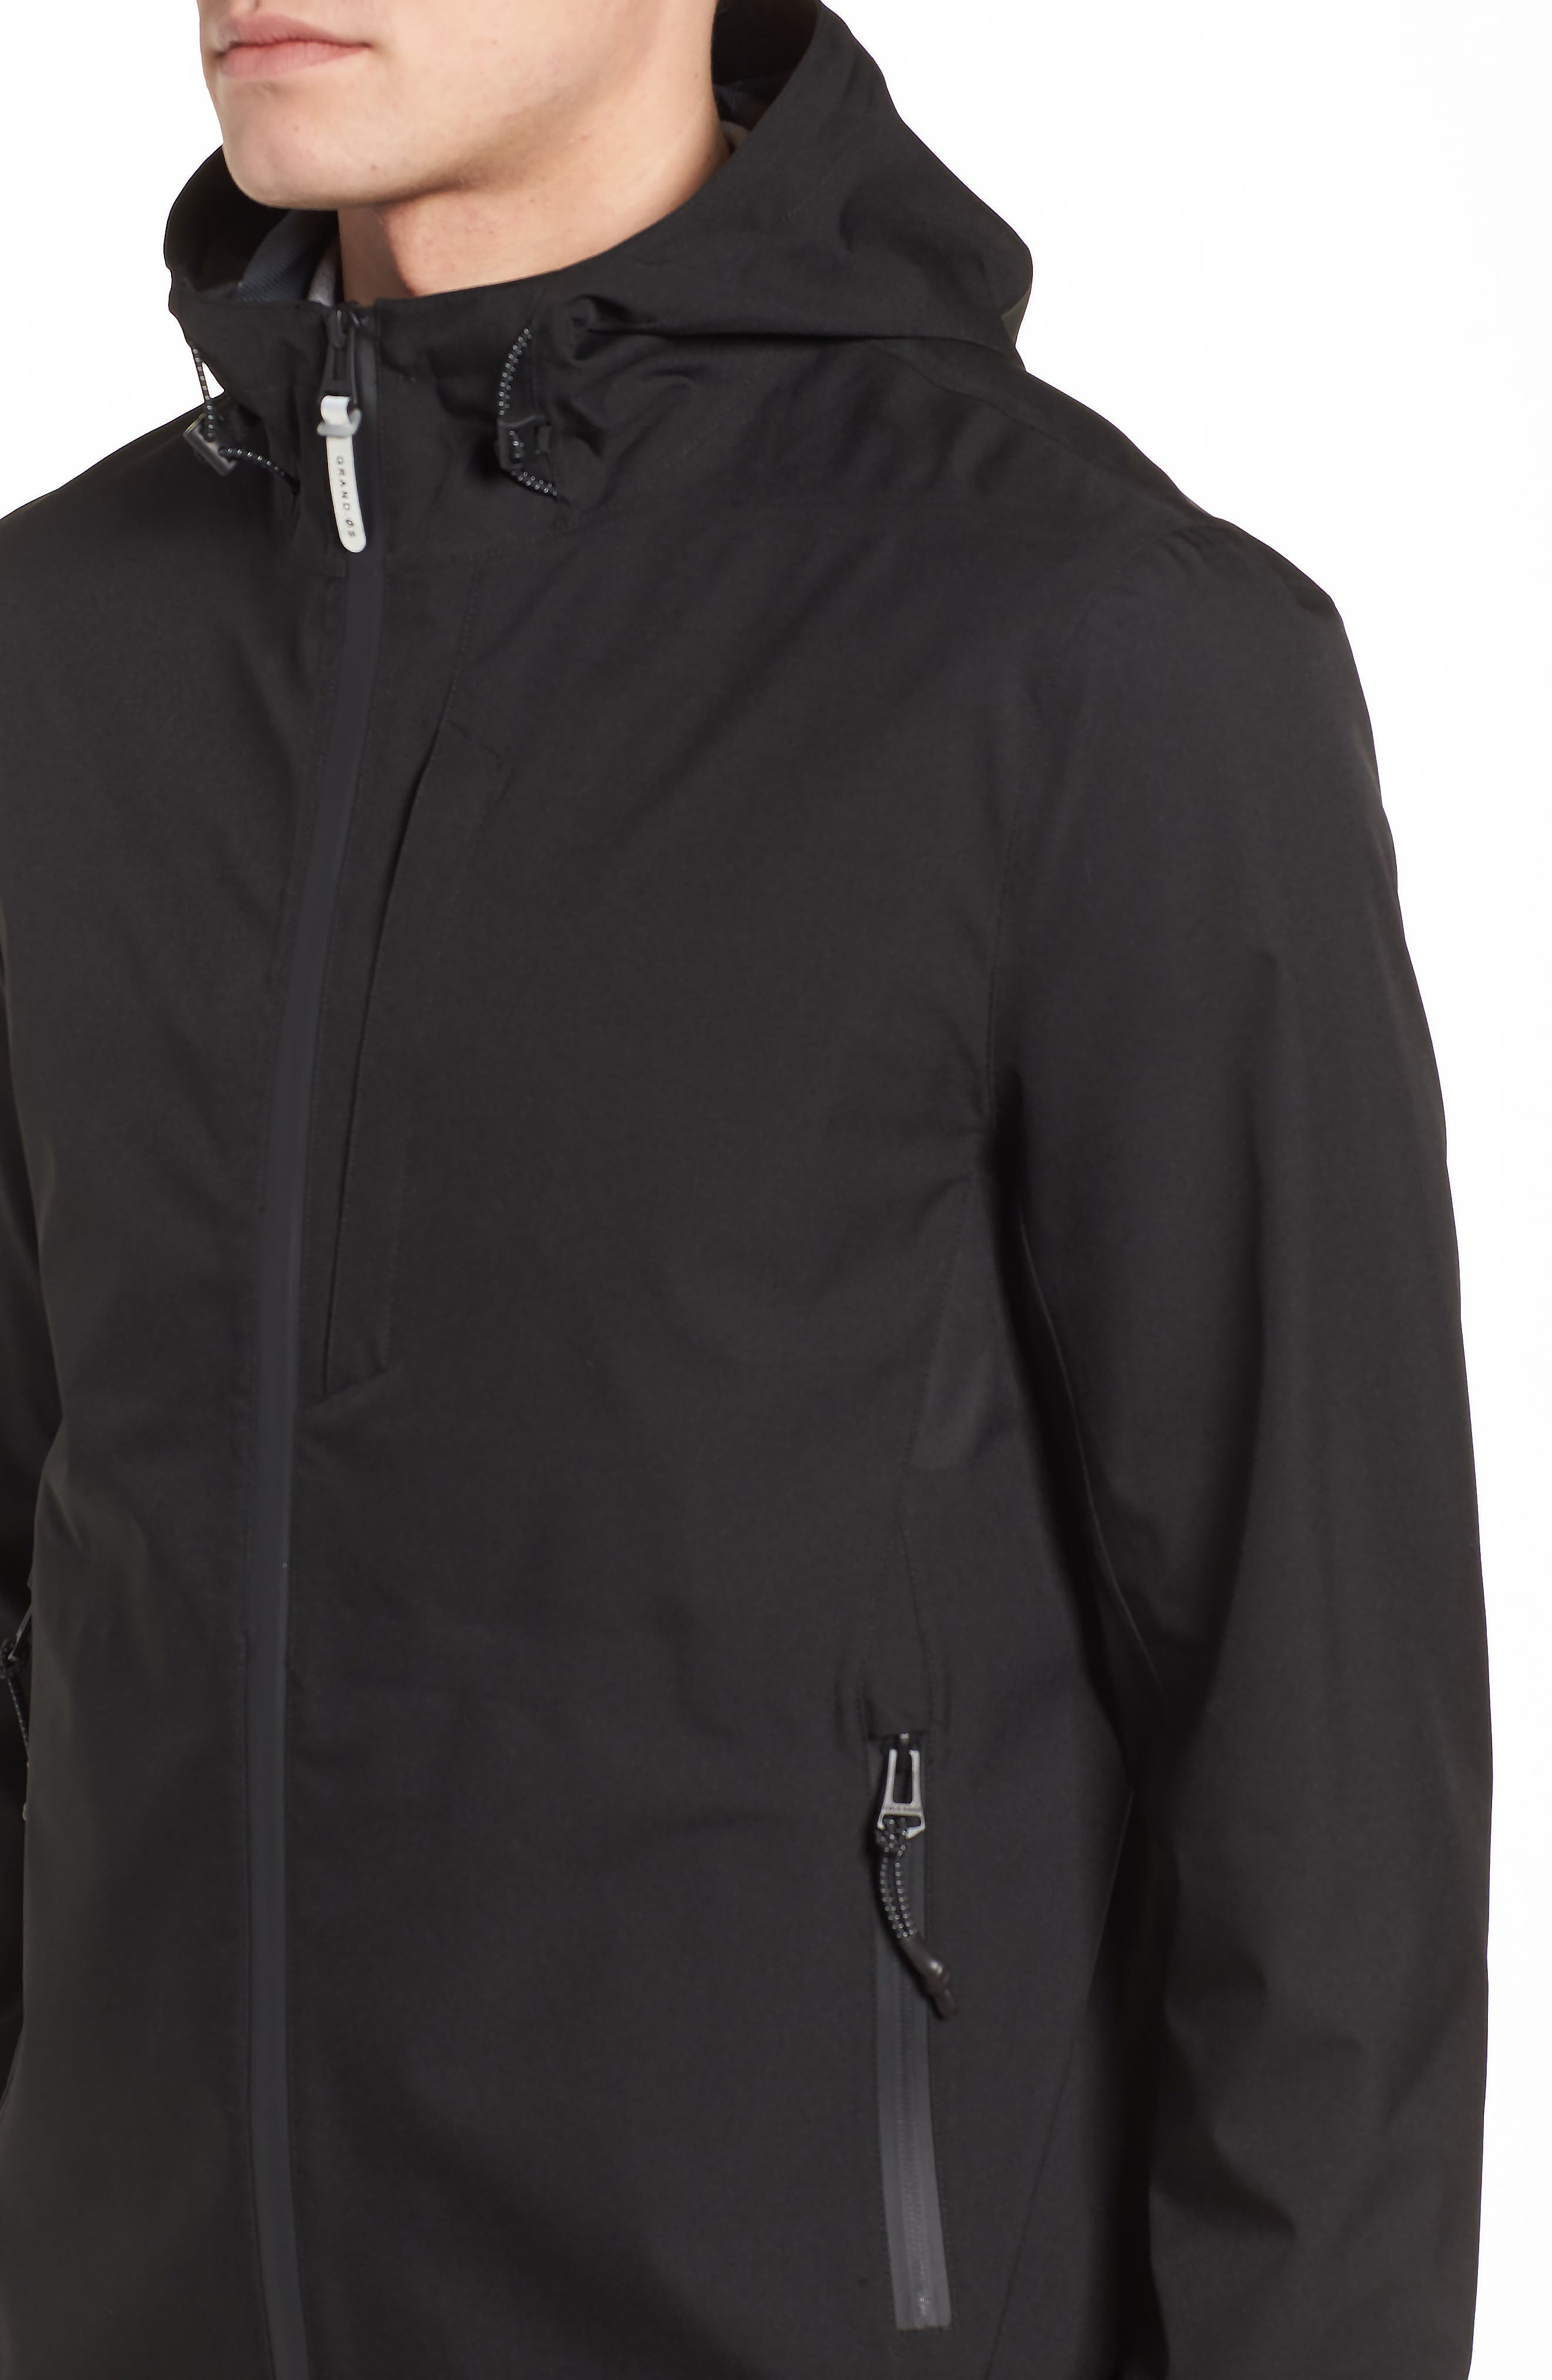 Seam Sealed Packable Jacket,                             Alternate thumbnail 4, color,                             BLACK